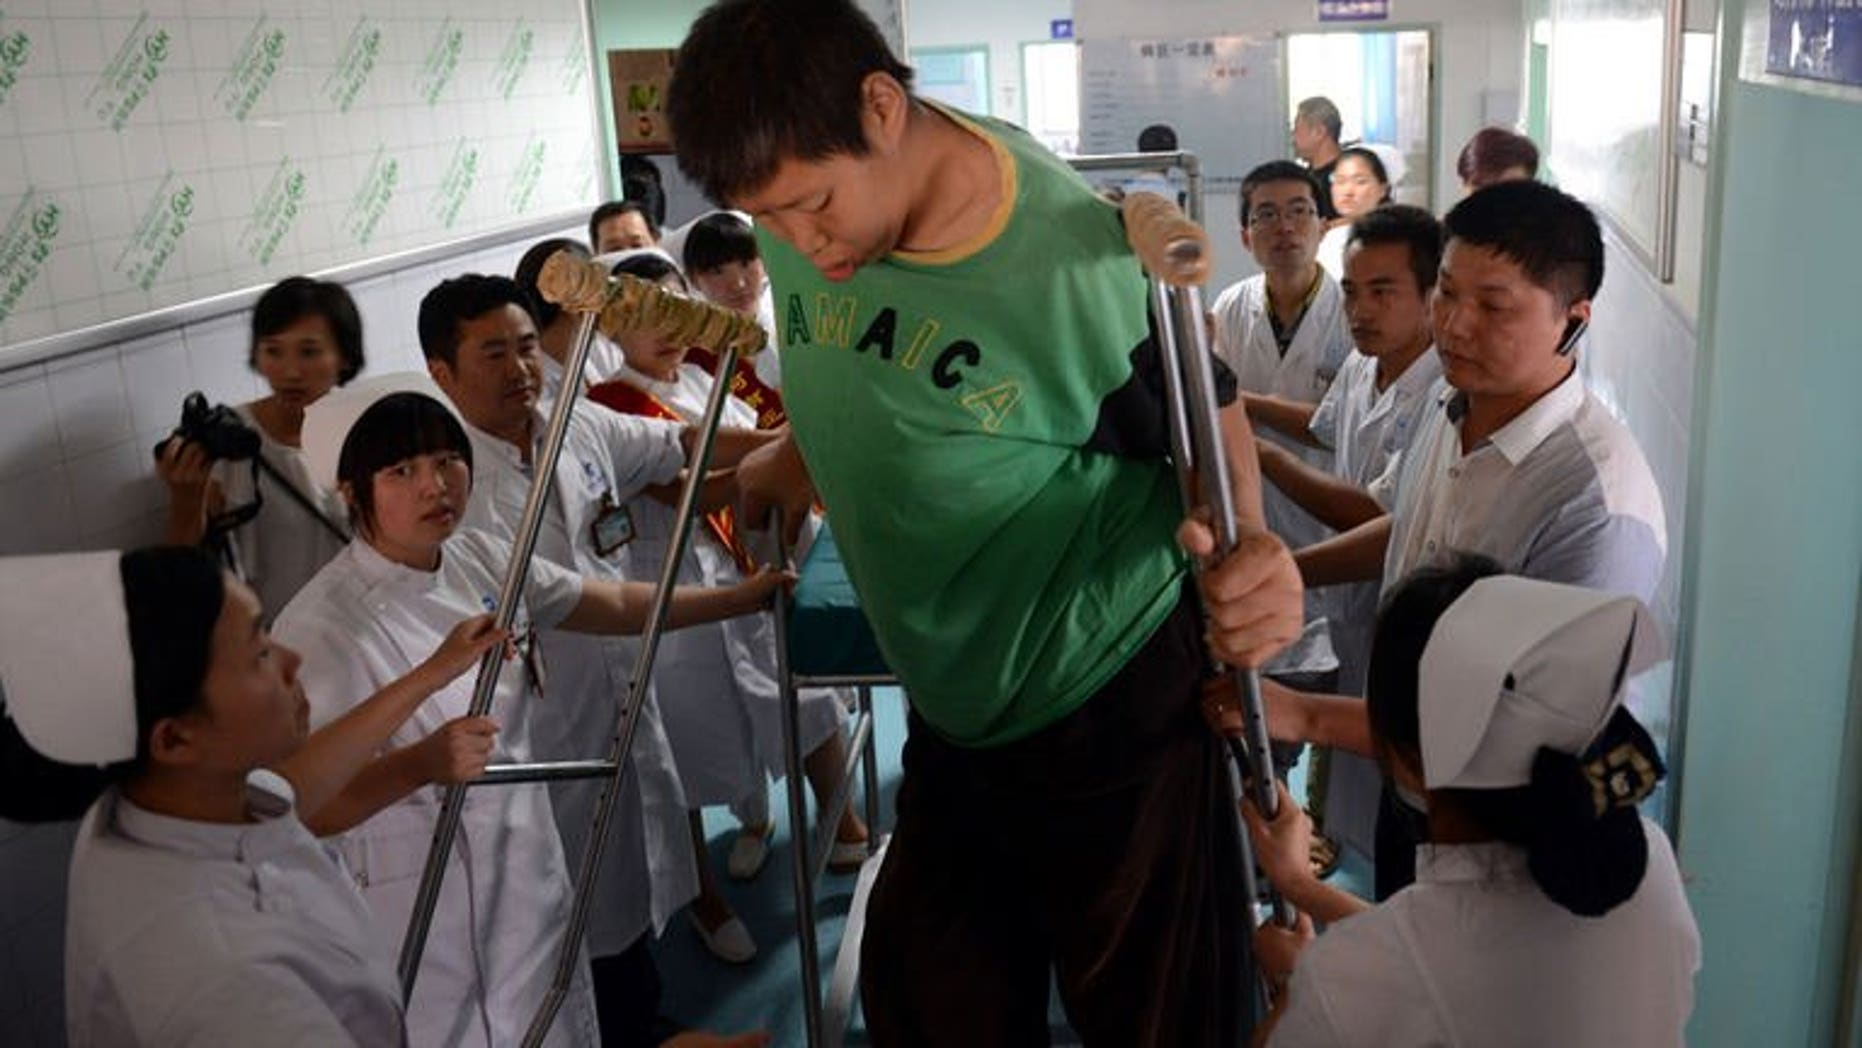 Wang Fengjun gets off a specially designed chair at a hospital in Zhengzhou, central China, on July 6, 2013. Wang, who is among the world's tallest living people, has been hospitalised for a hip replacement.